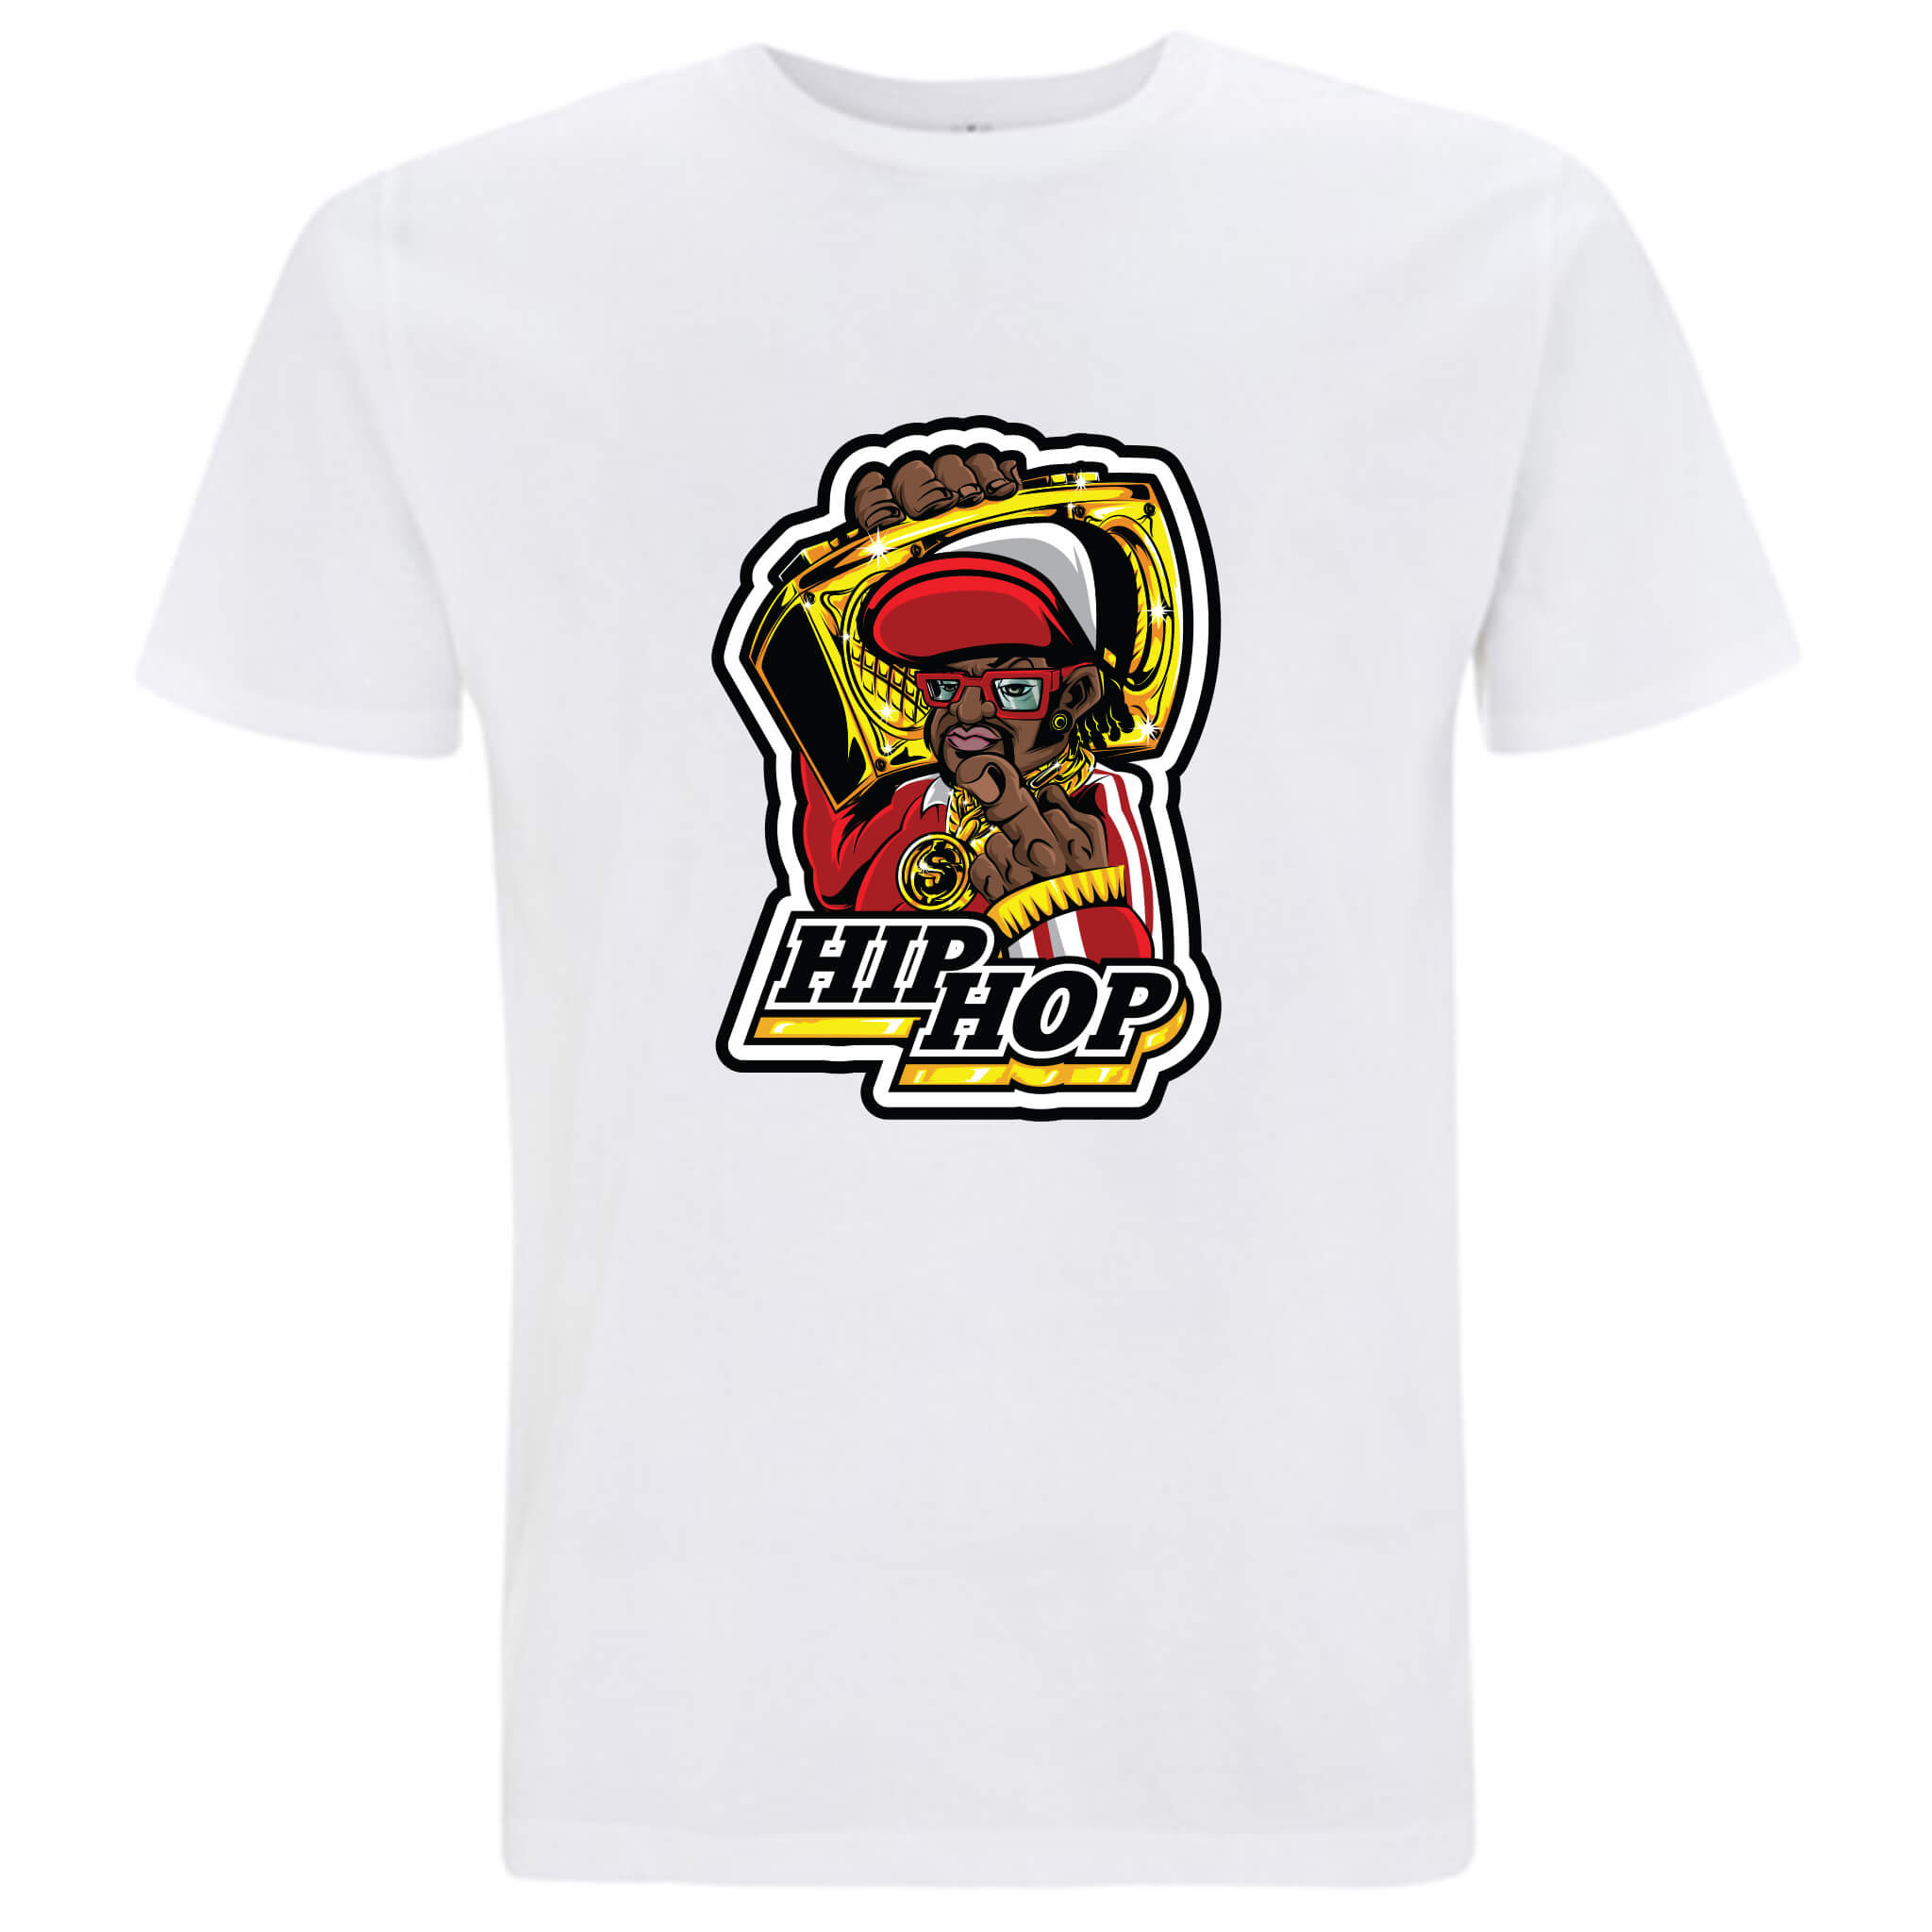 Musica Hip Hop - T-shirt Uomo - T-Shirt by Fol The Brand